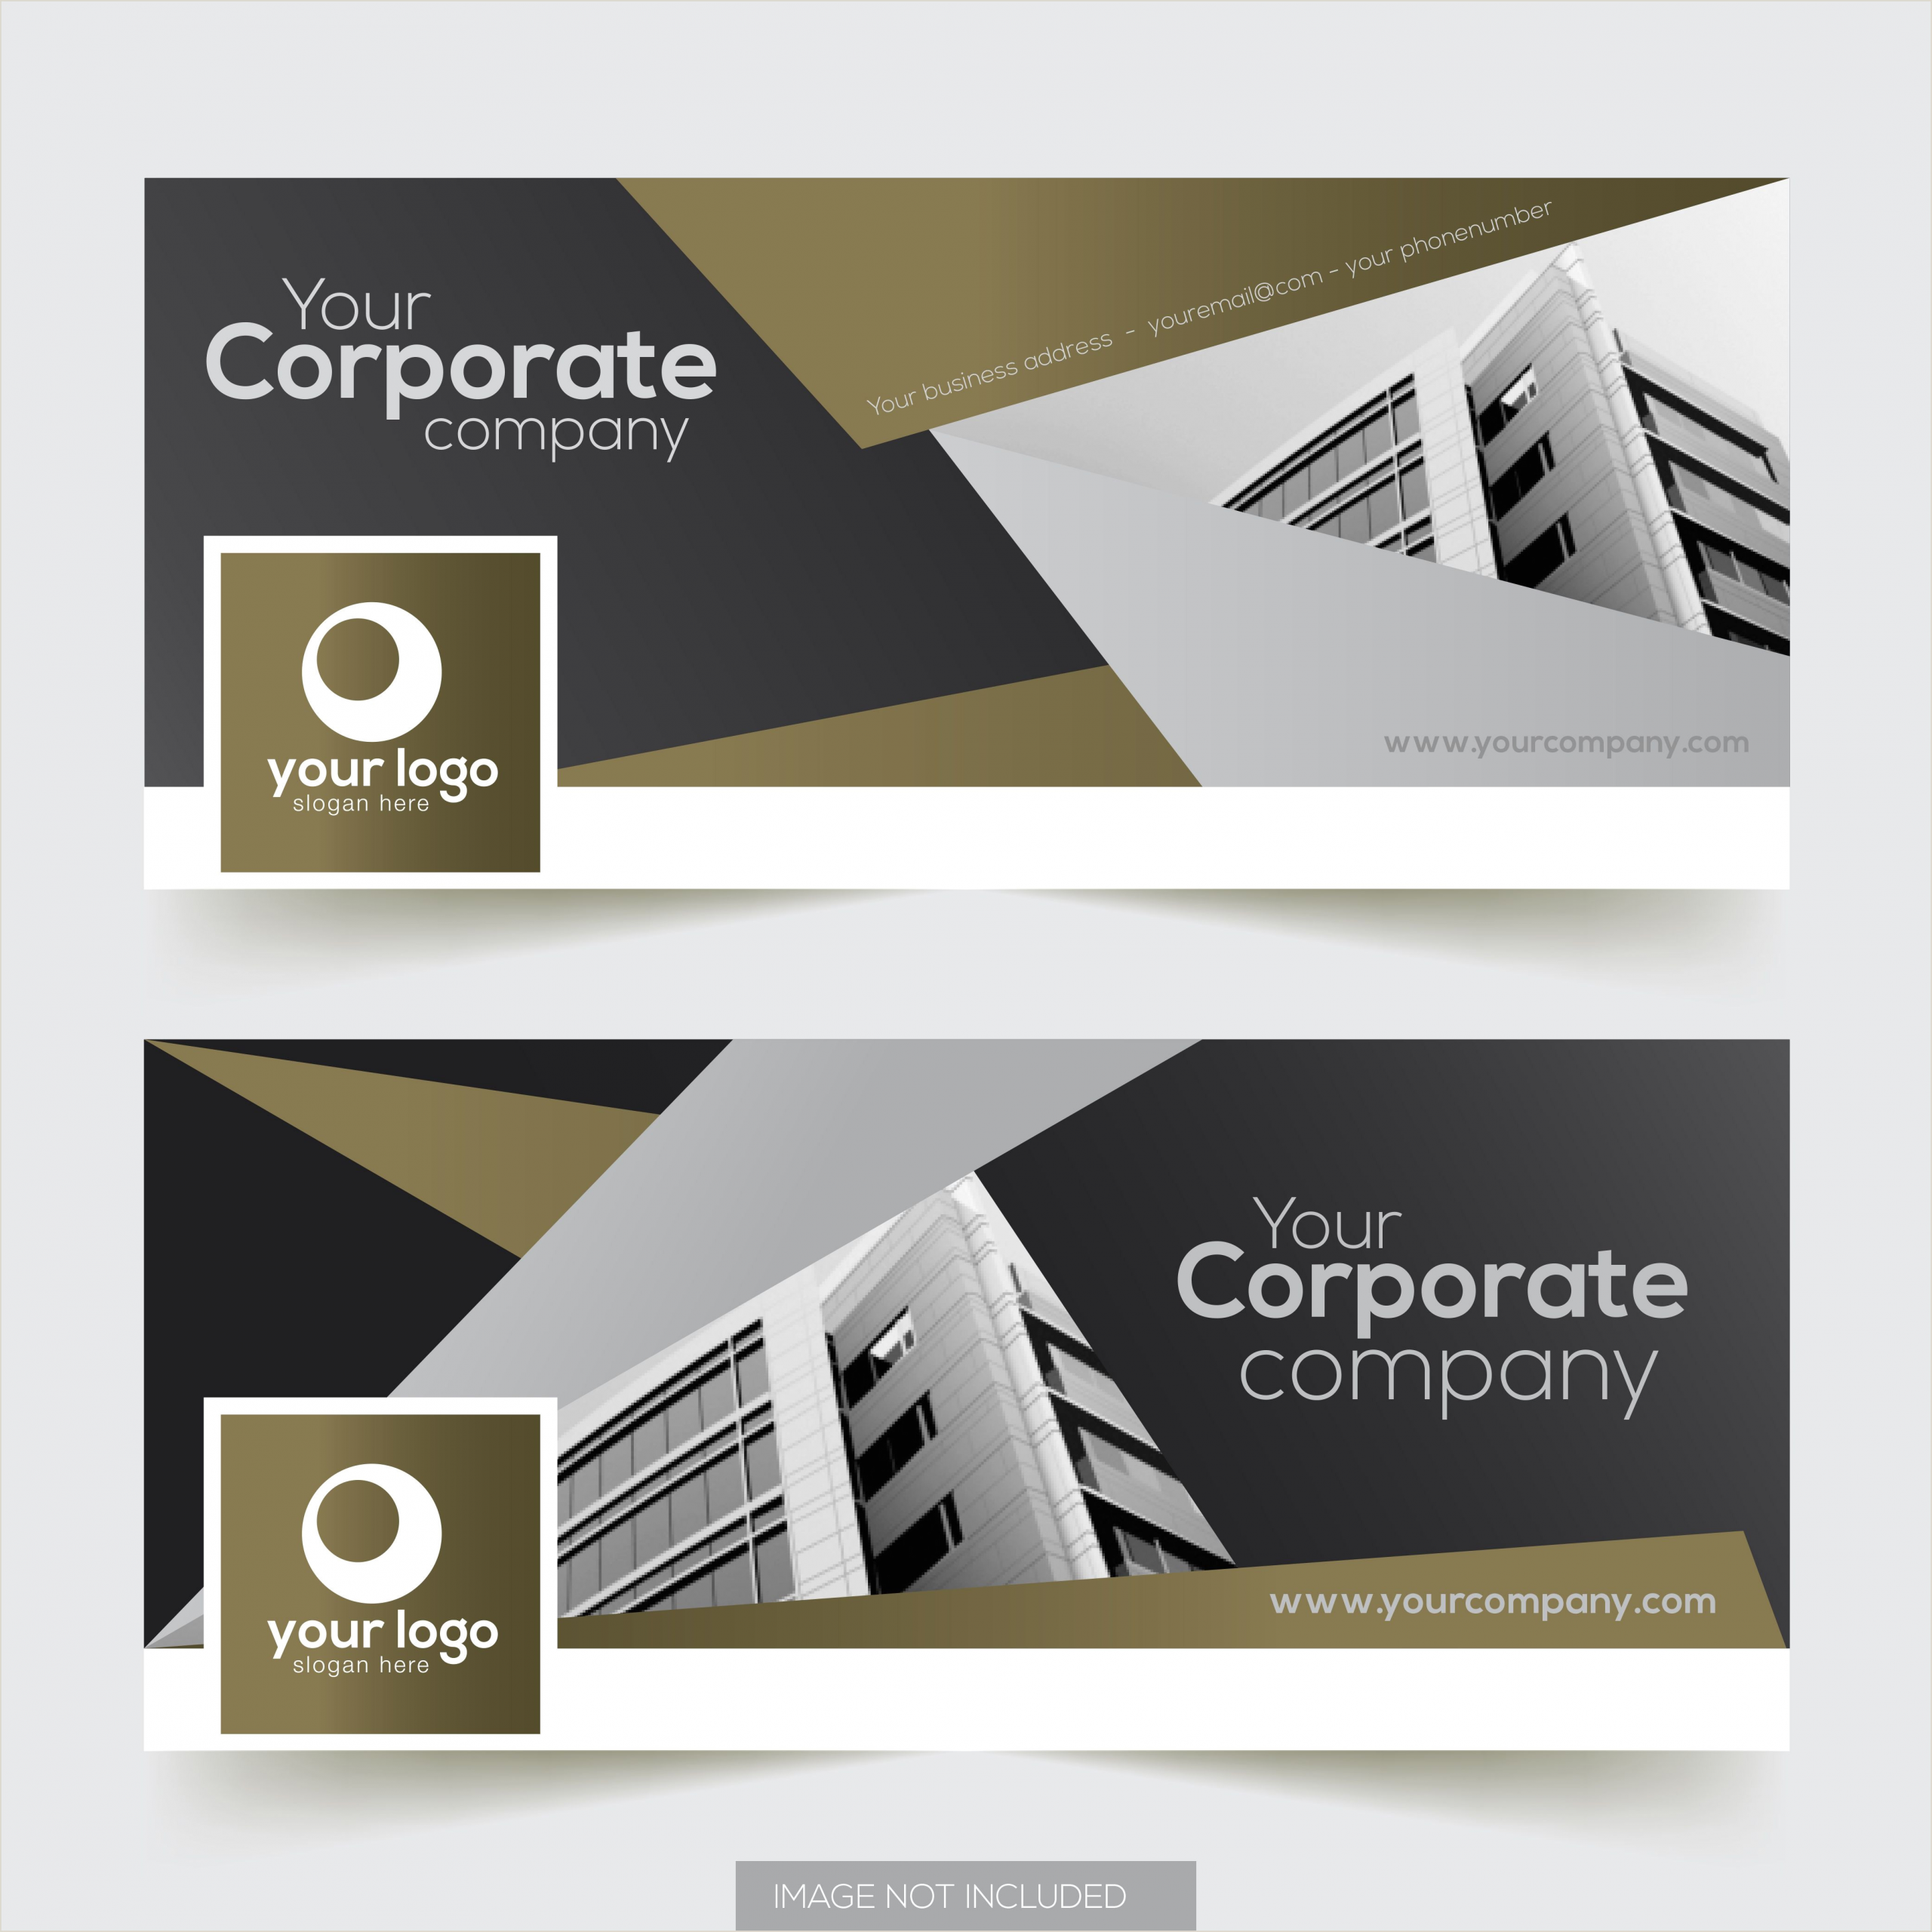 Business Cards With Social Media Corporaate Cover Timeline Cover Corporate